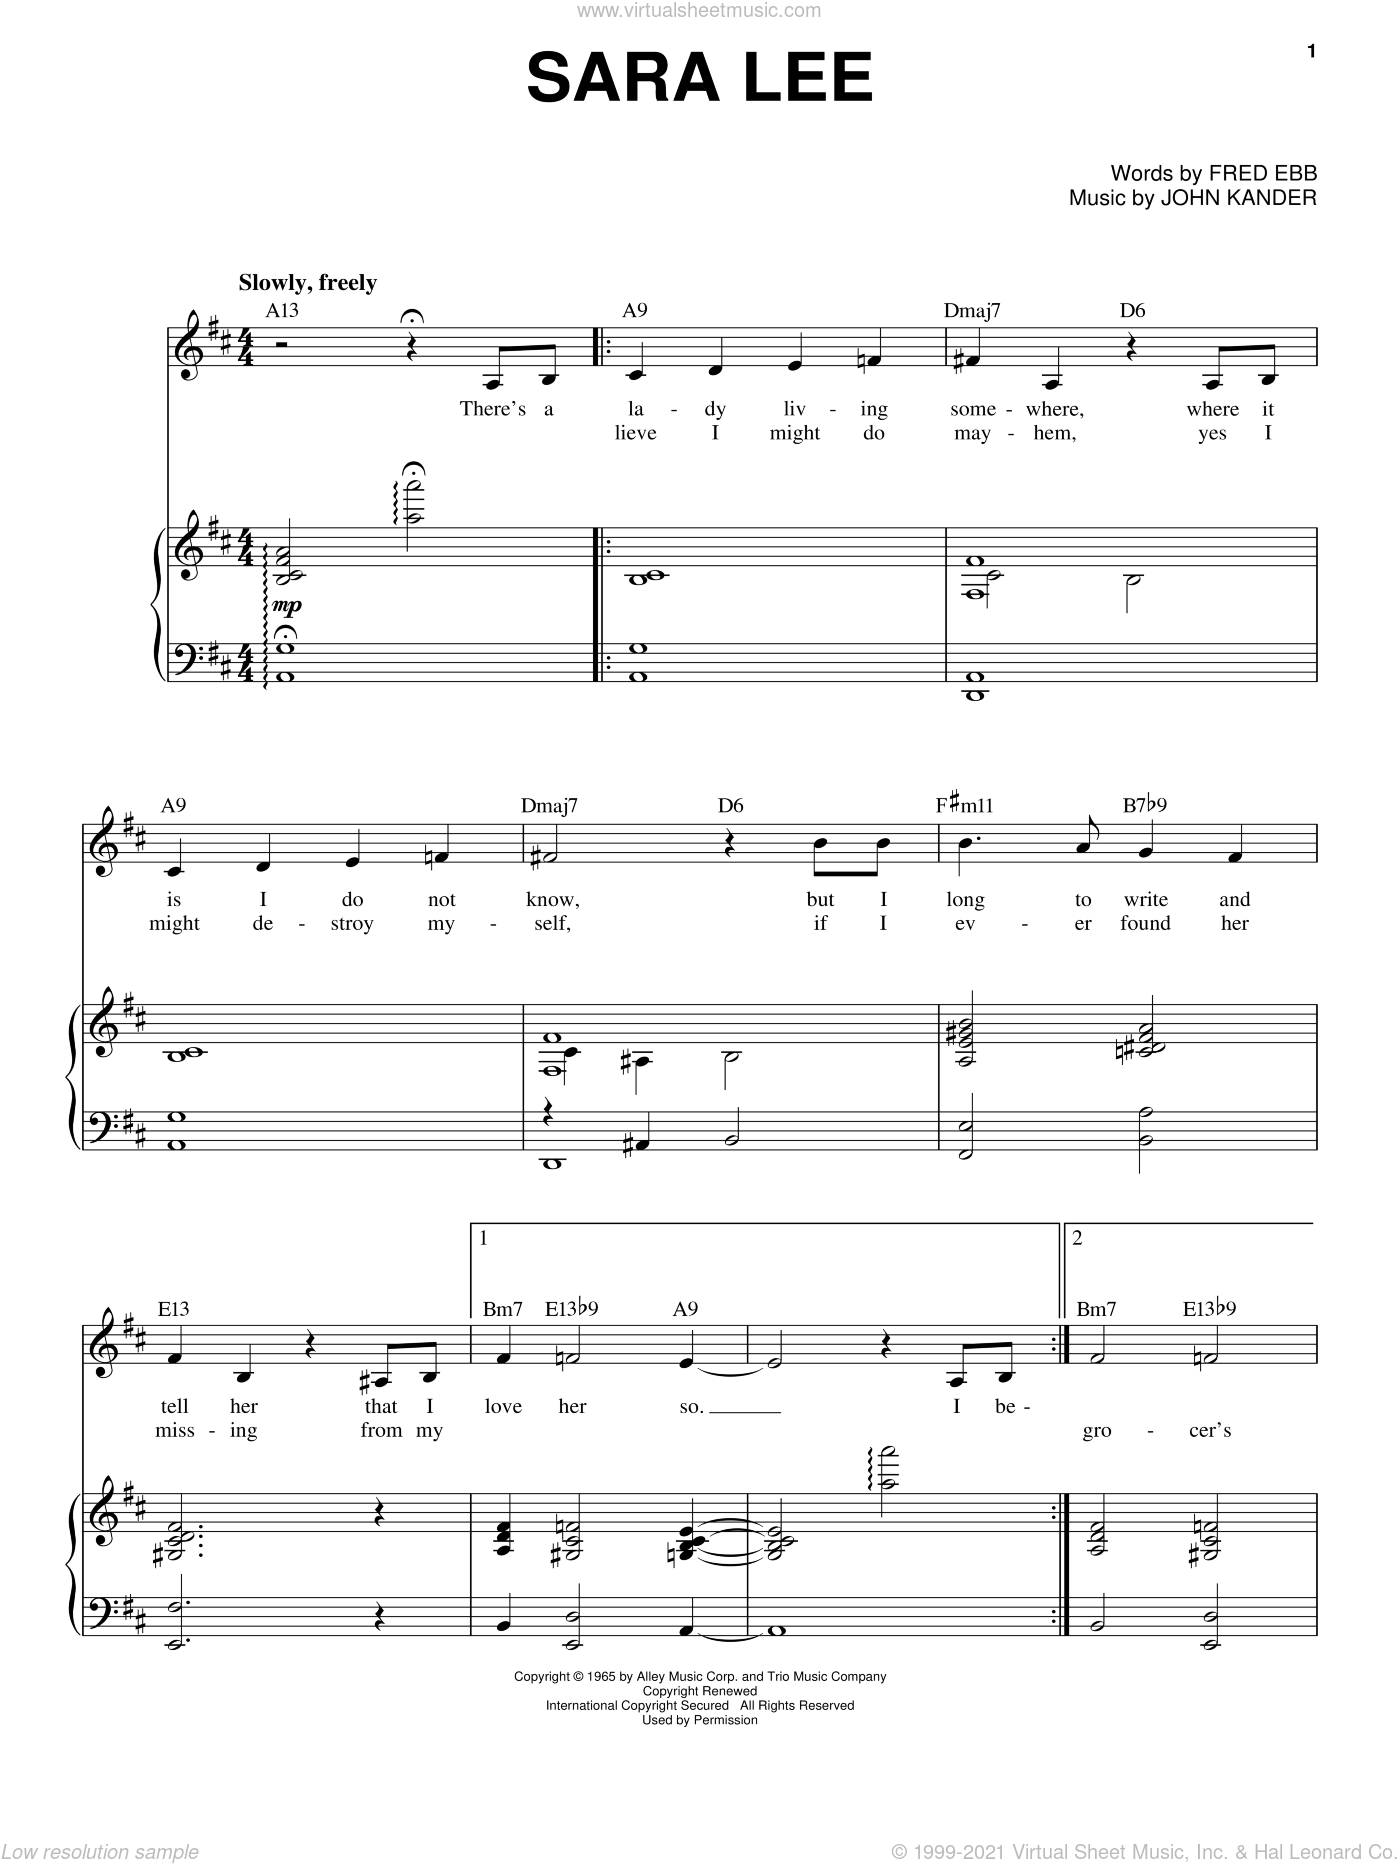 Sara Lee sheet music for voice and piano by Liza Minnelli, Kander & Ebb, Fred Ebb and John Kander, intermediate skill level